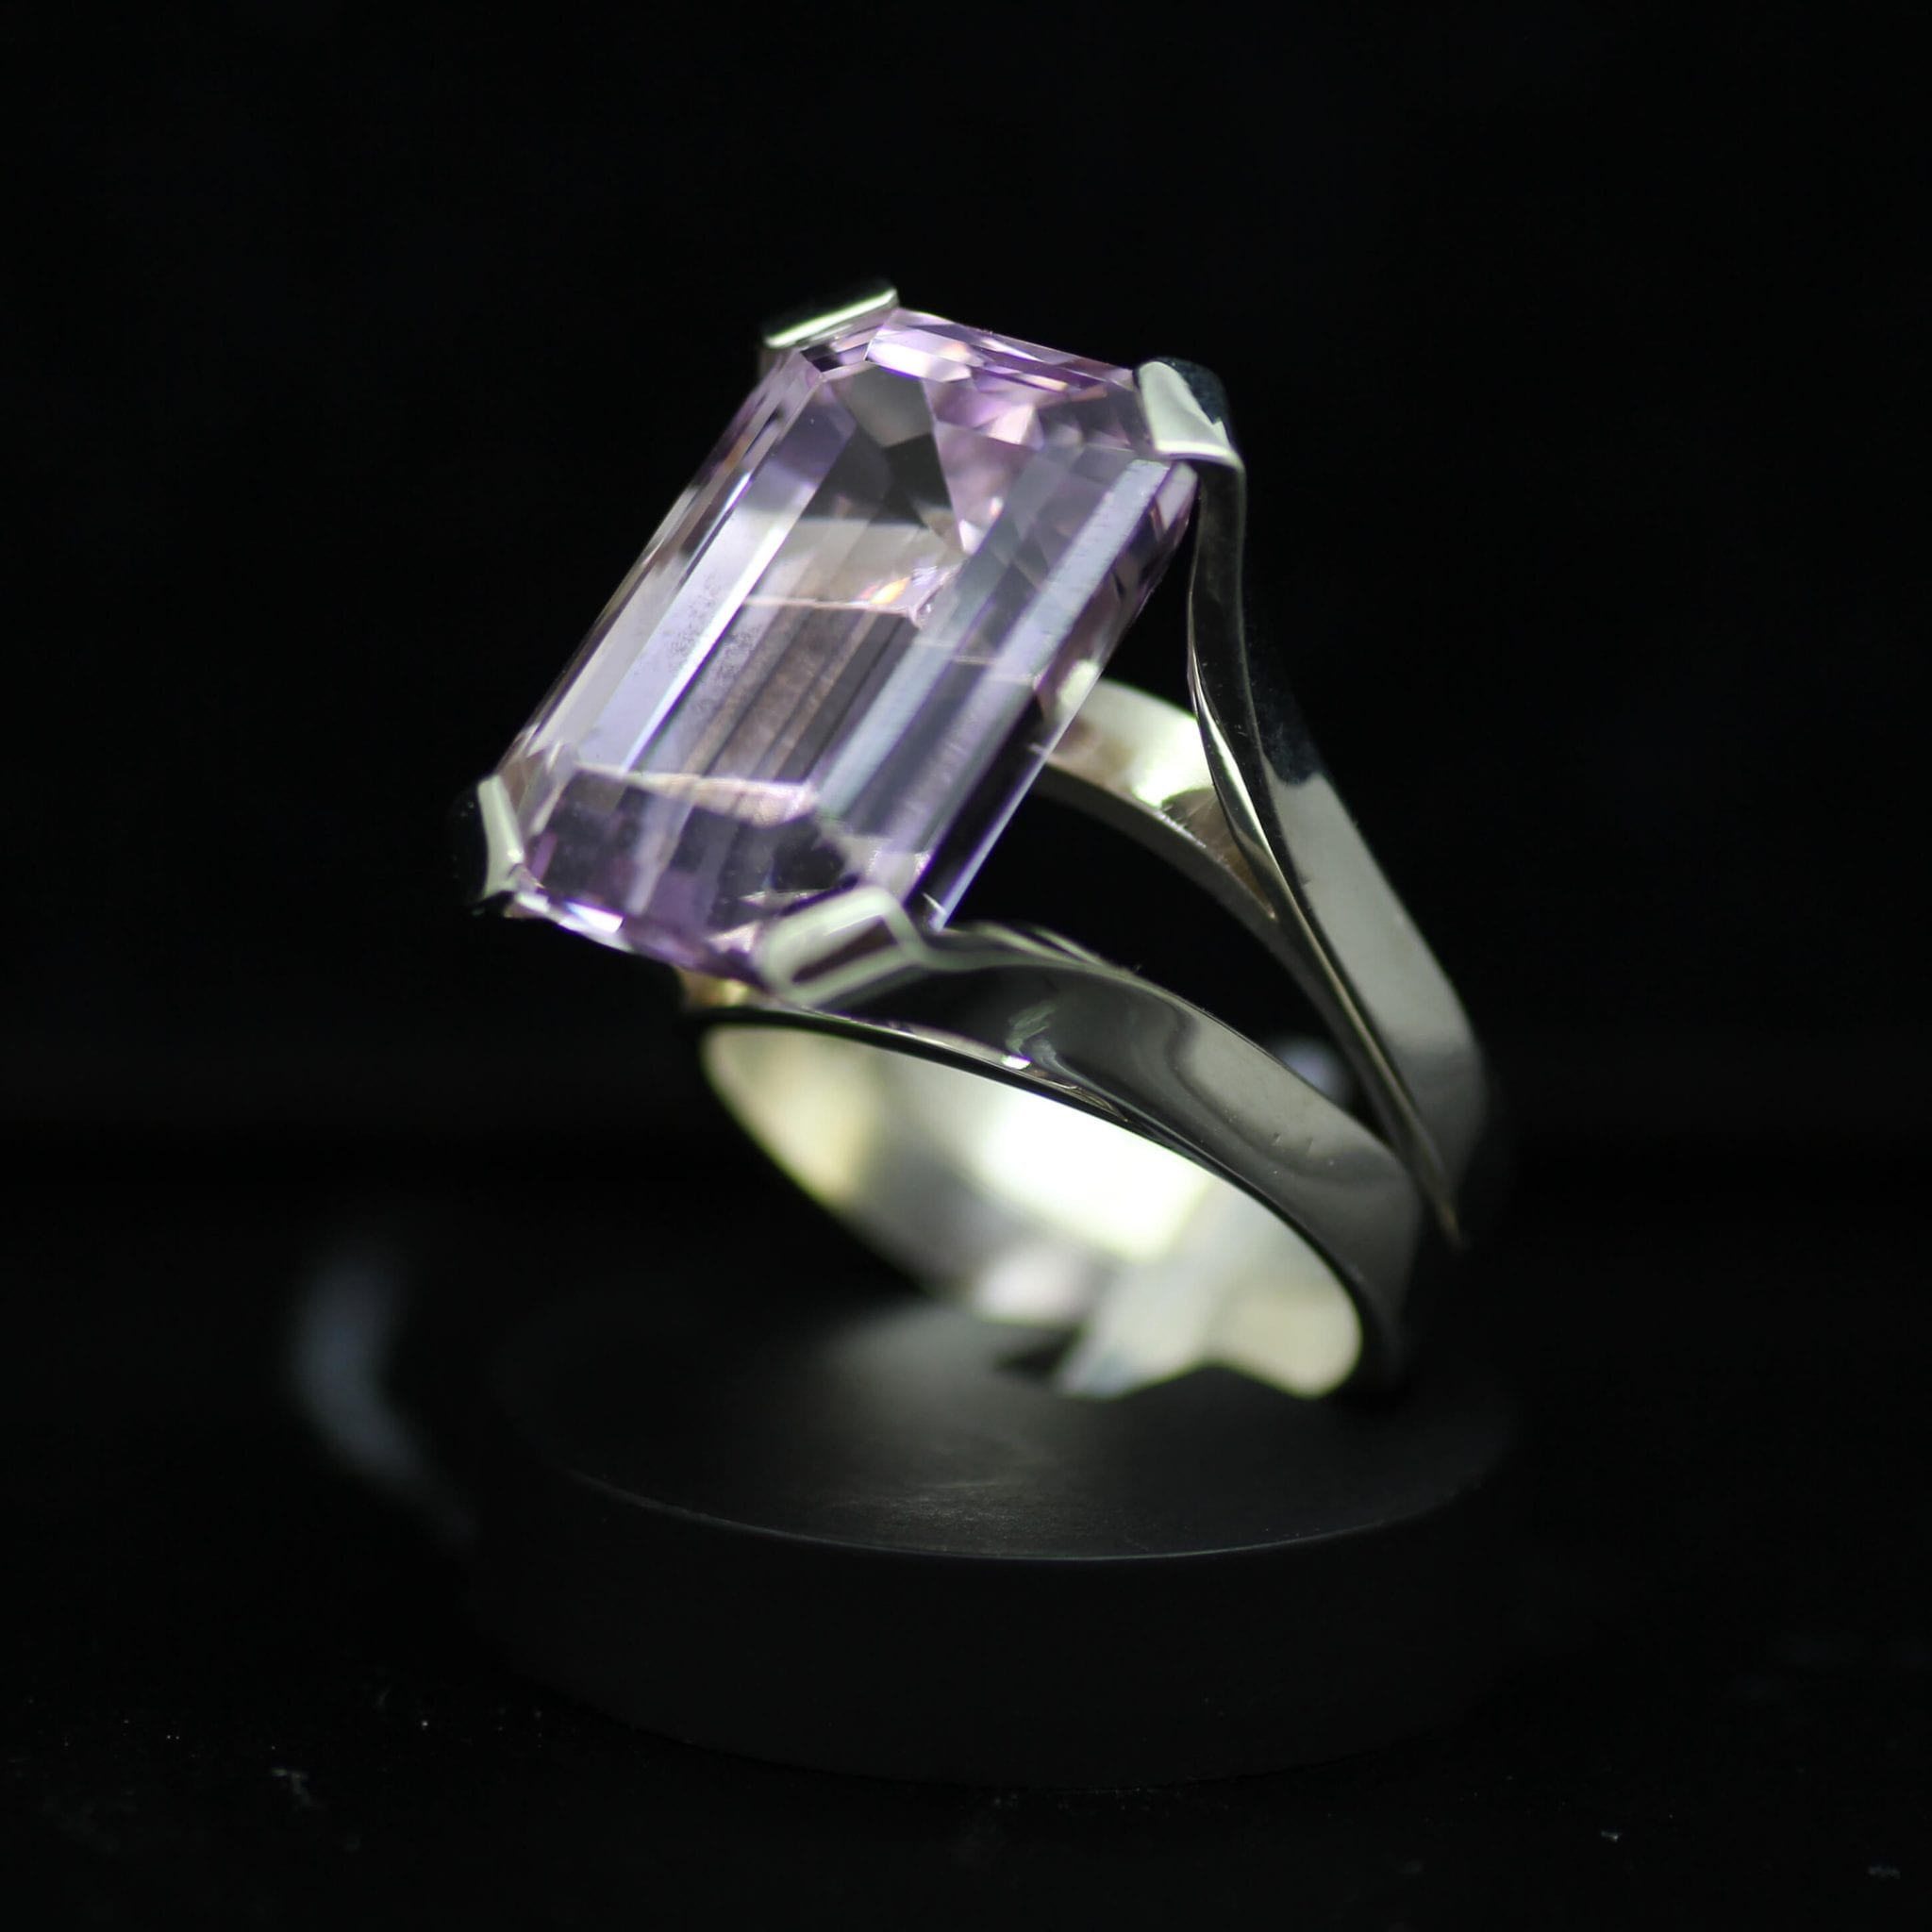 Bespoke Emerald cut Kunzite cocktail ring by julian stephens